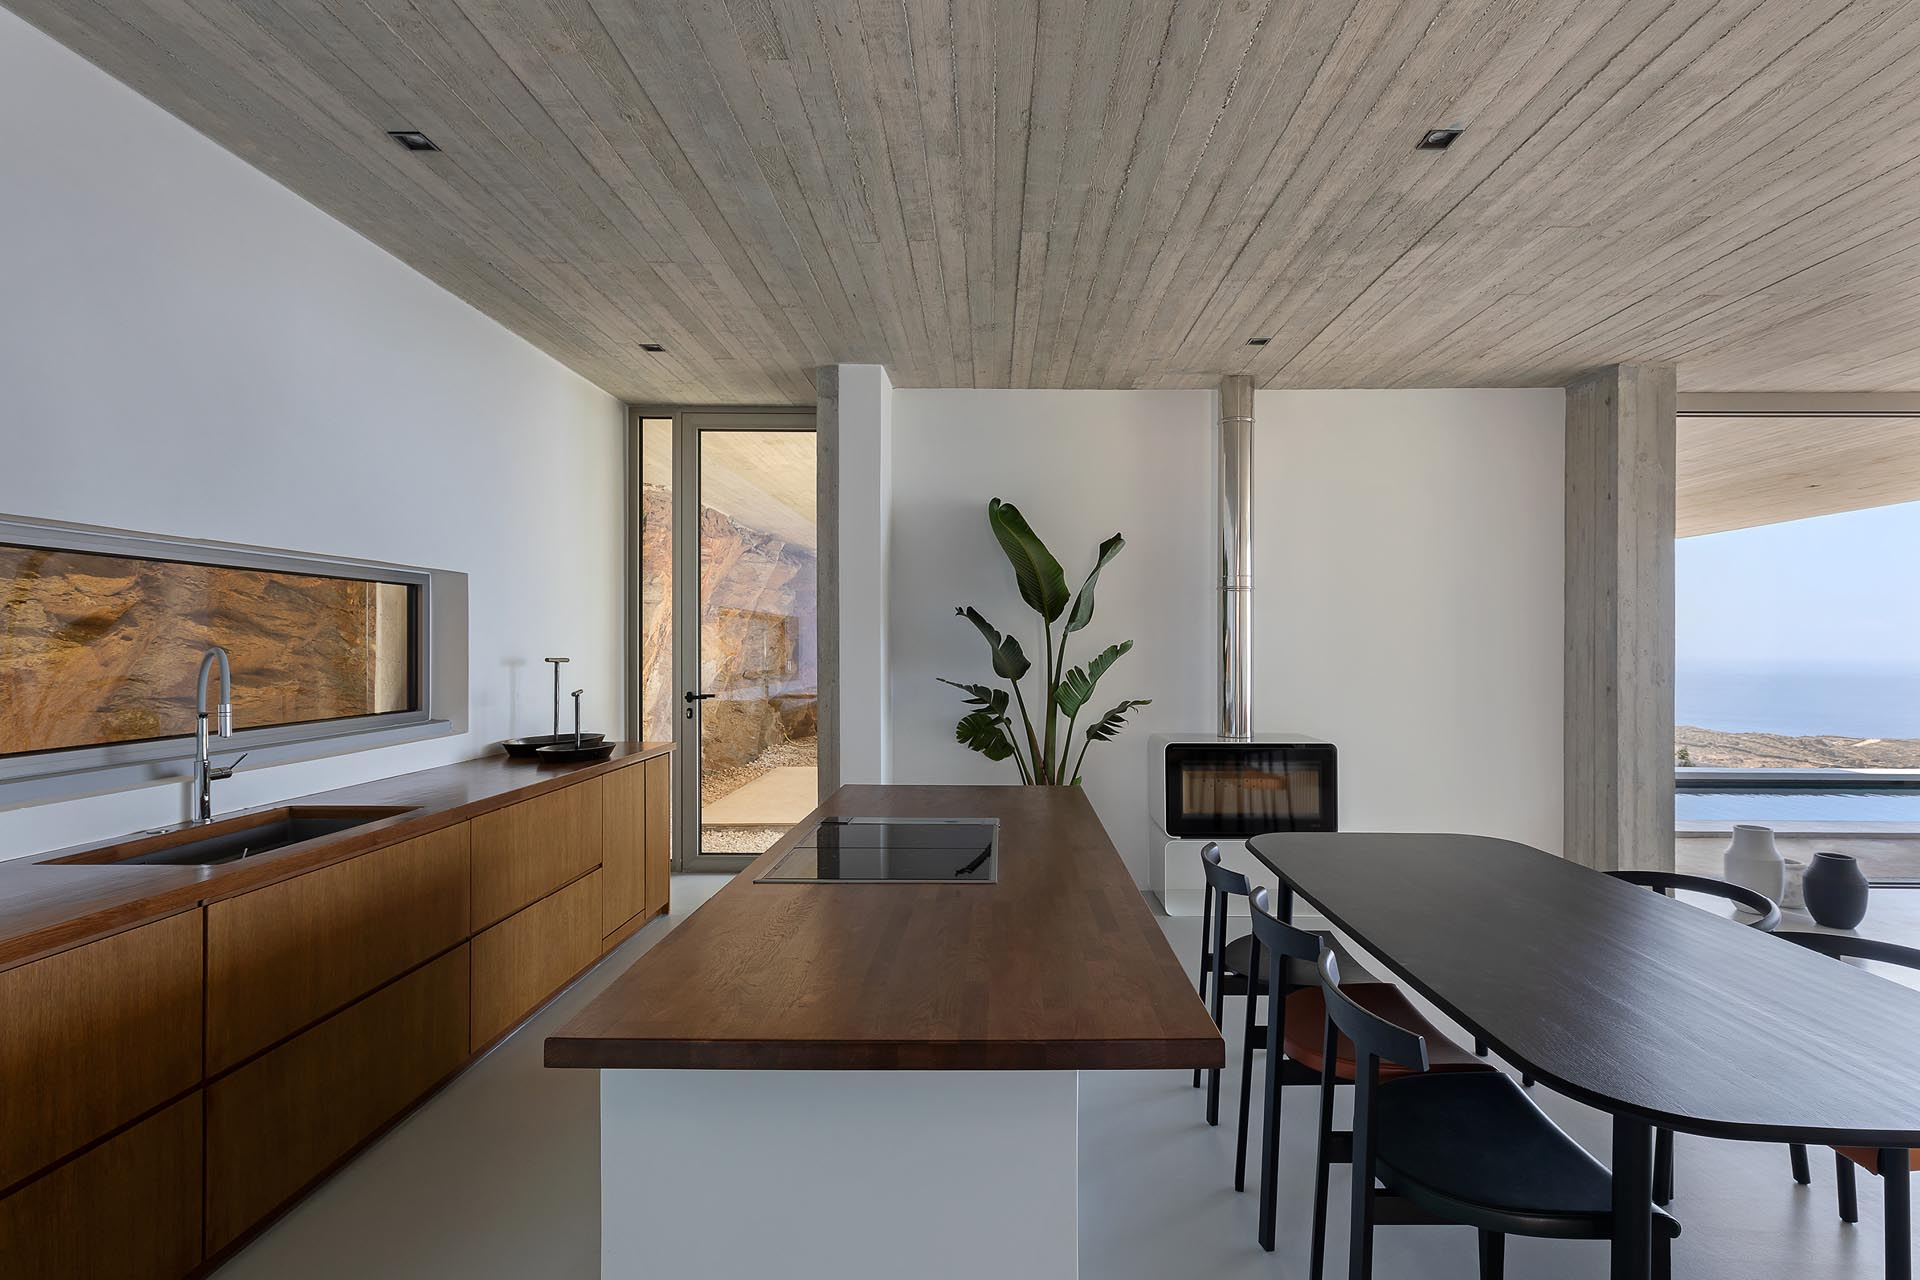 A concrete home built into the hillside, has an open living room, dining room, and kitchen, with the backsplash providing a view of the natural rocks.